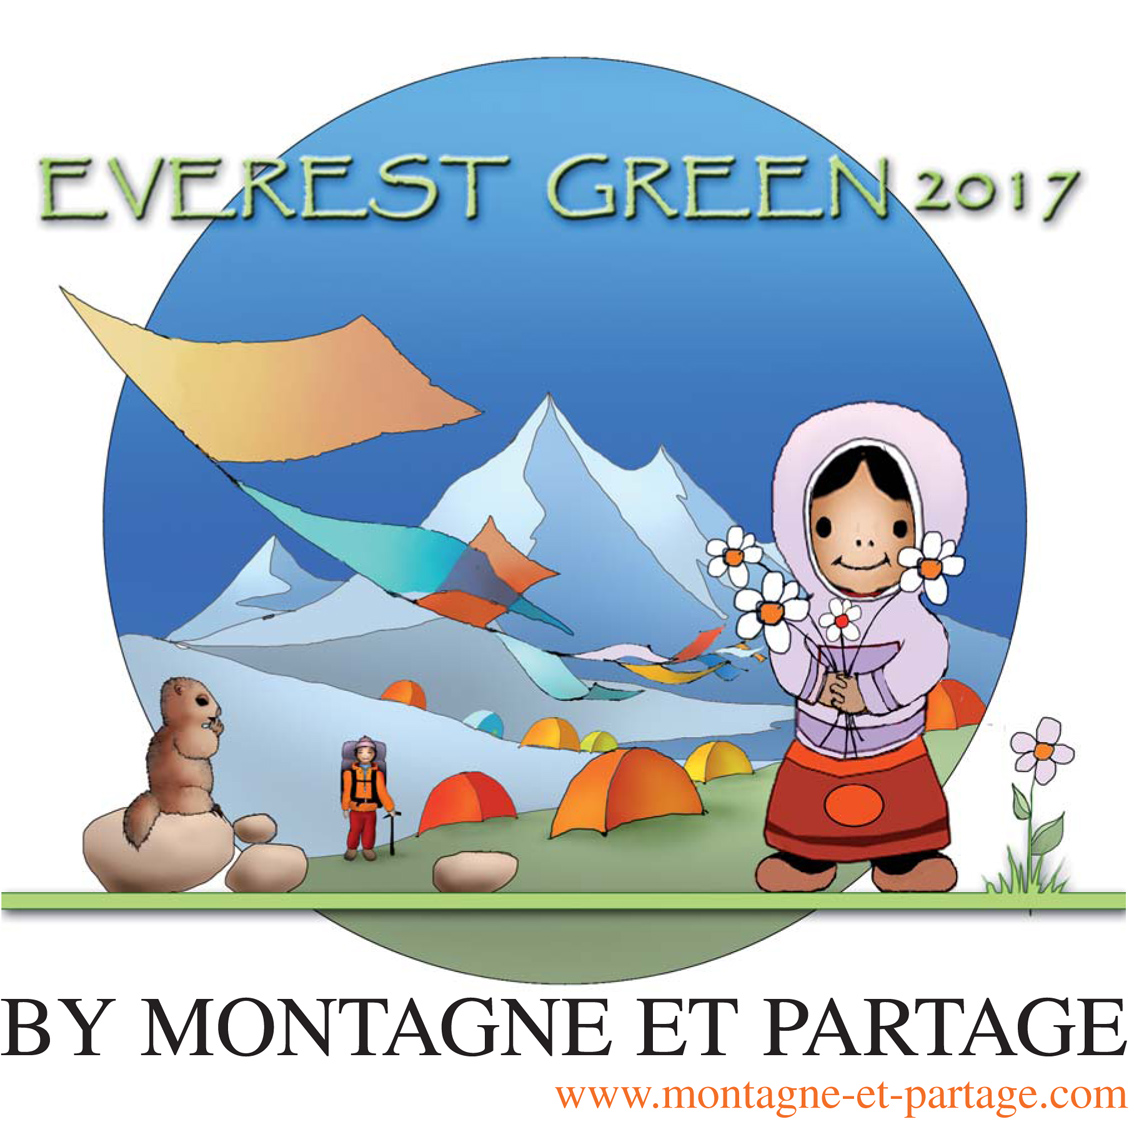 86625 - DOSSIER PARTENARIAT EVEREST GREEN 2017